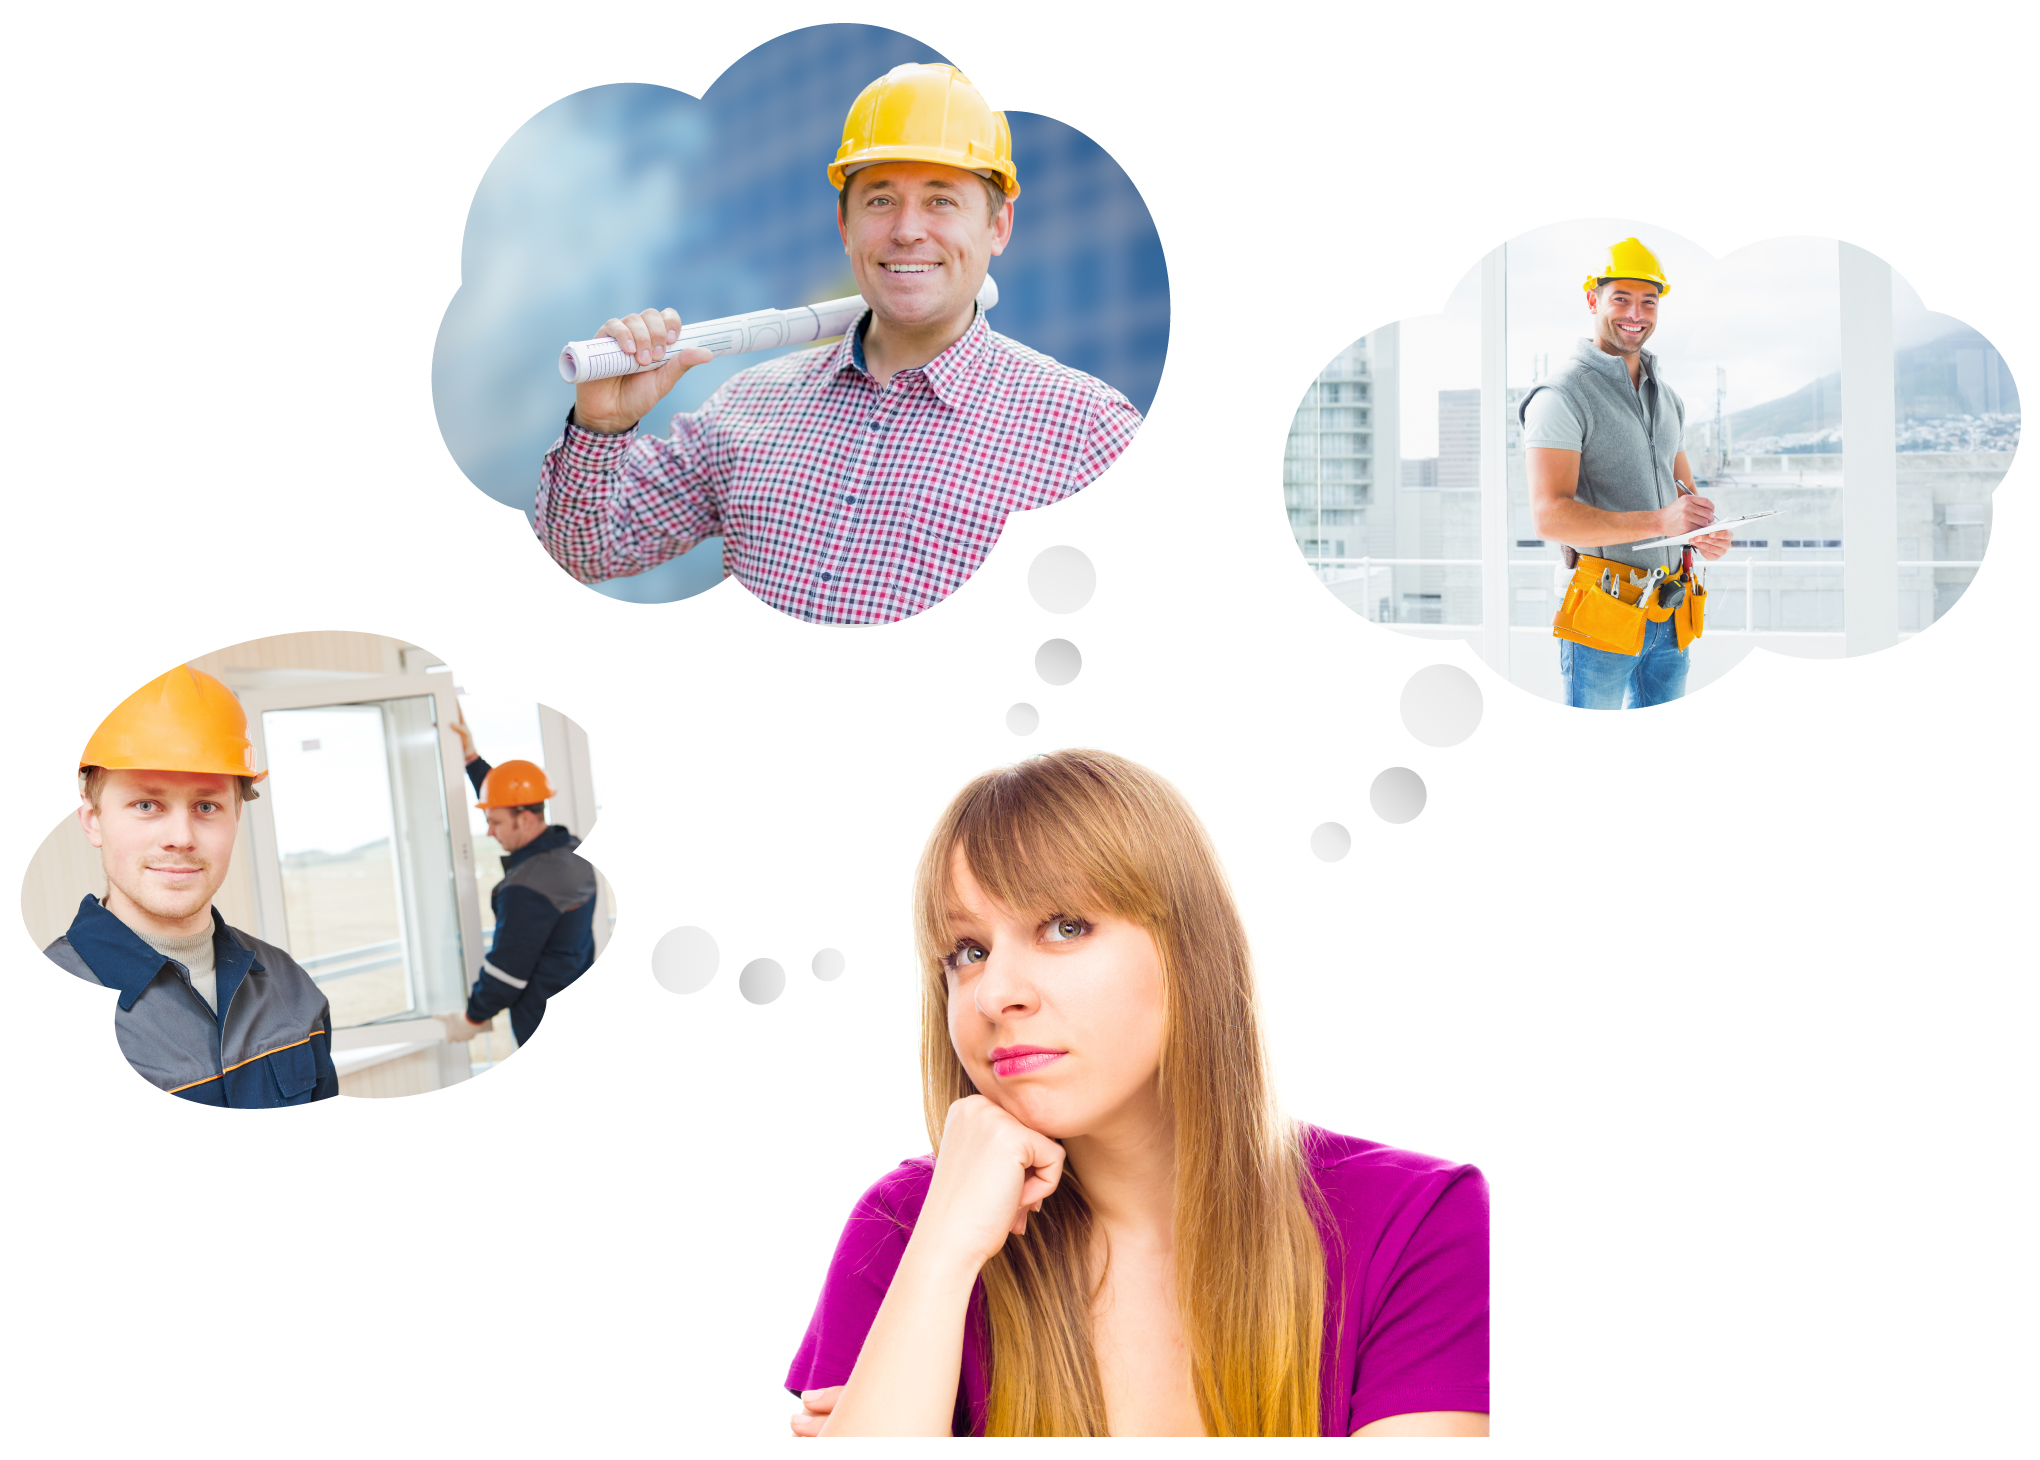 Woman thinking to hire a window supplier